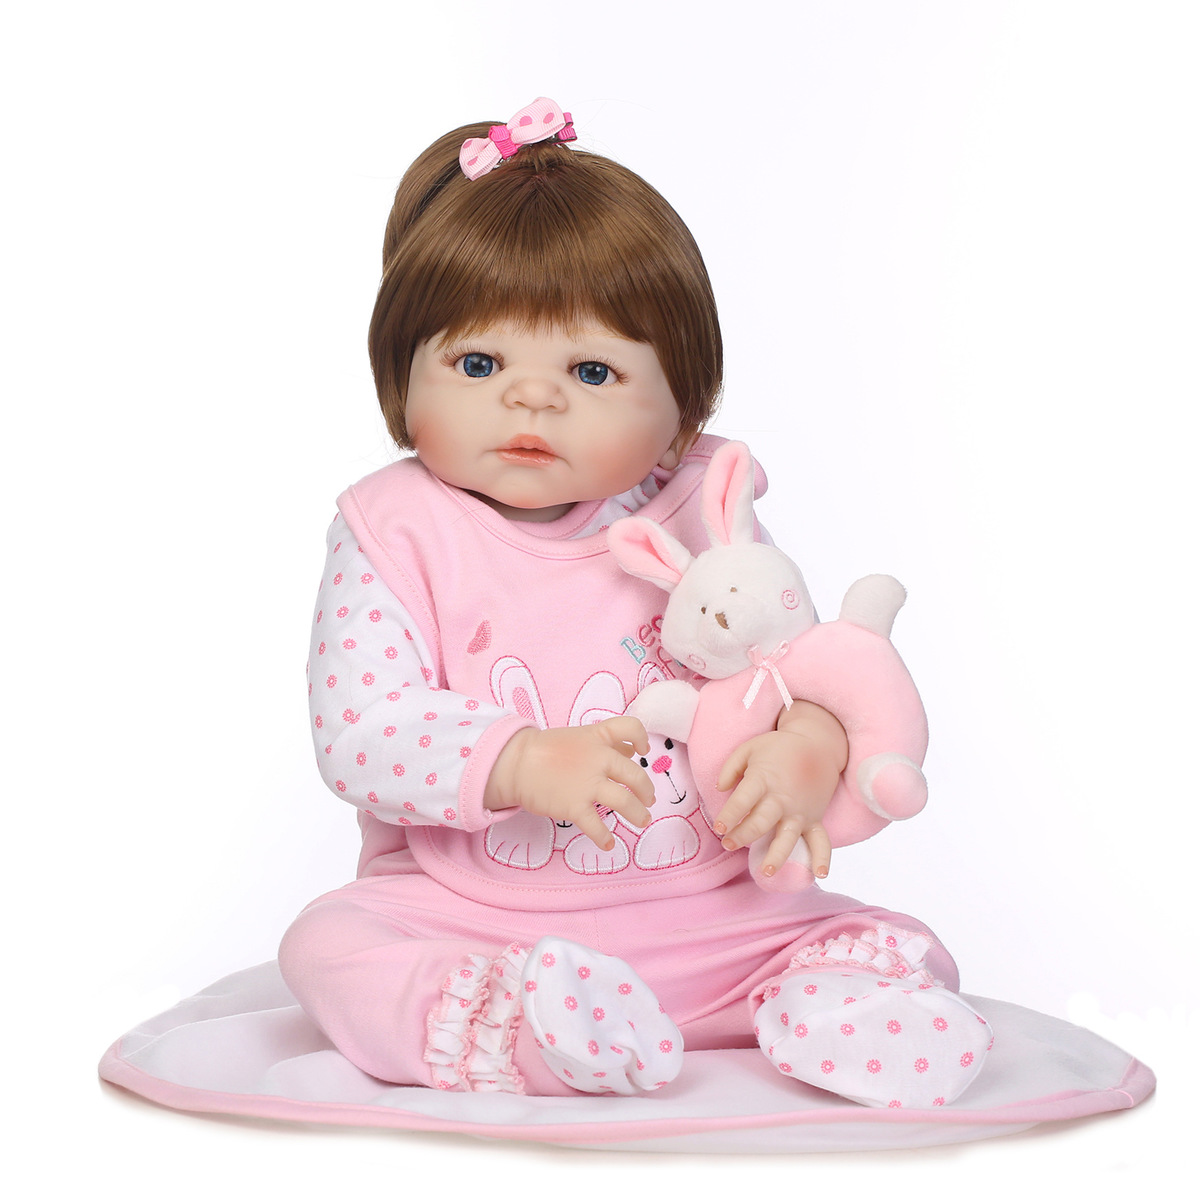 Simulation Girls Be Reborn Girls Pink Colour Small Rabbit Lovely Childhood Playmate Full Rubber Can BathsSimulation Girls Be Reborn Girls Pink Colour Small Rabbit Lovely Childhood Playmate Full Rubber Can Baths